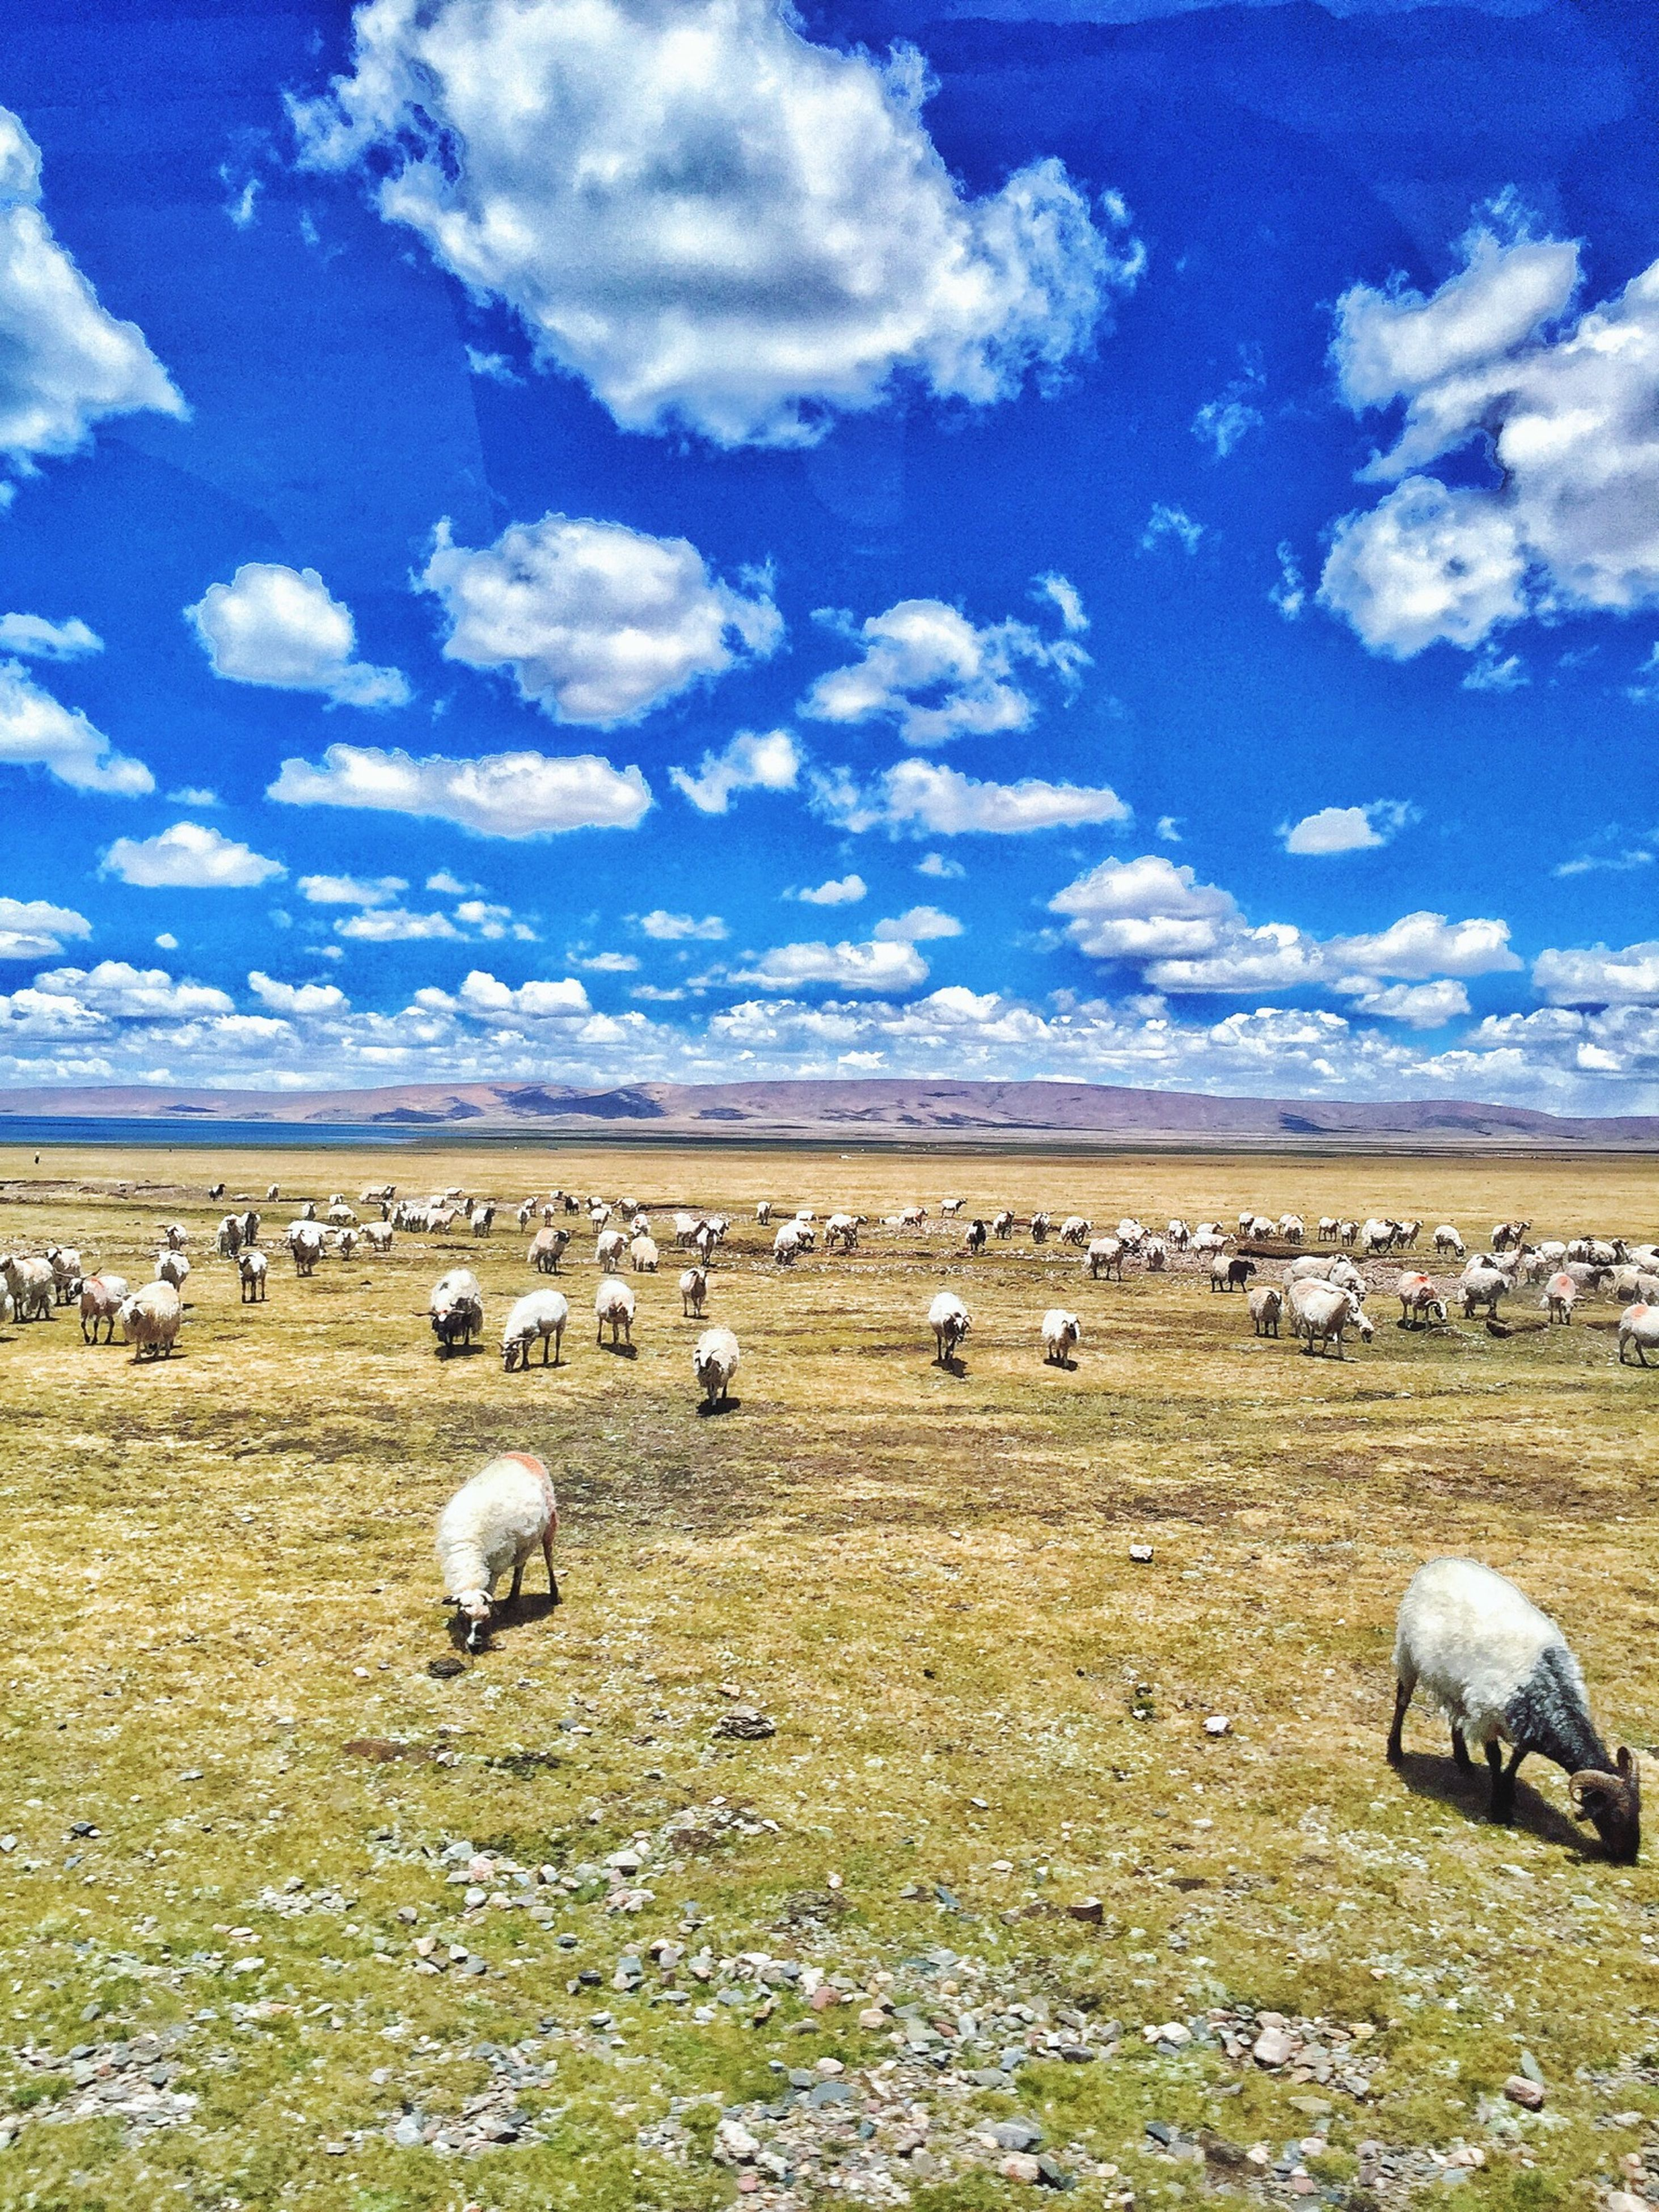 animal themes, sky, field, landscape, cloud - sky, grass, animals in the wild, wildlife, bird, tranquil scene, nature, rural scene, sheep, medium group of animals, livestock, hay, tranquility, beauty in nature, bale